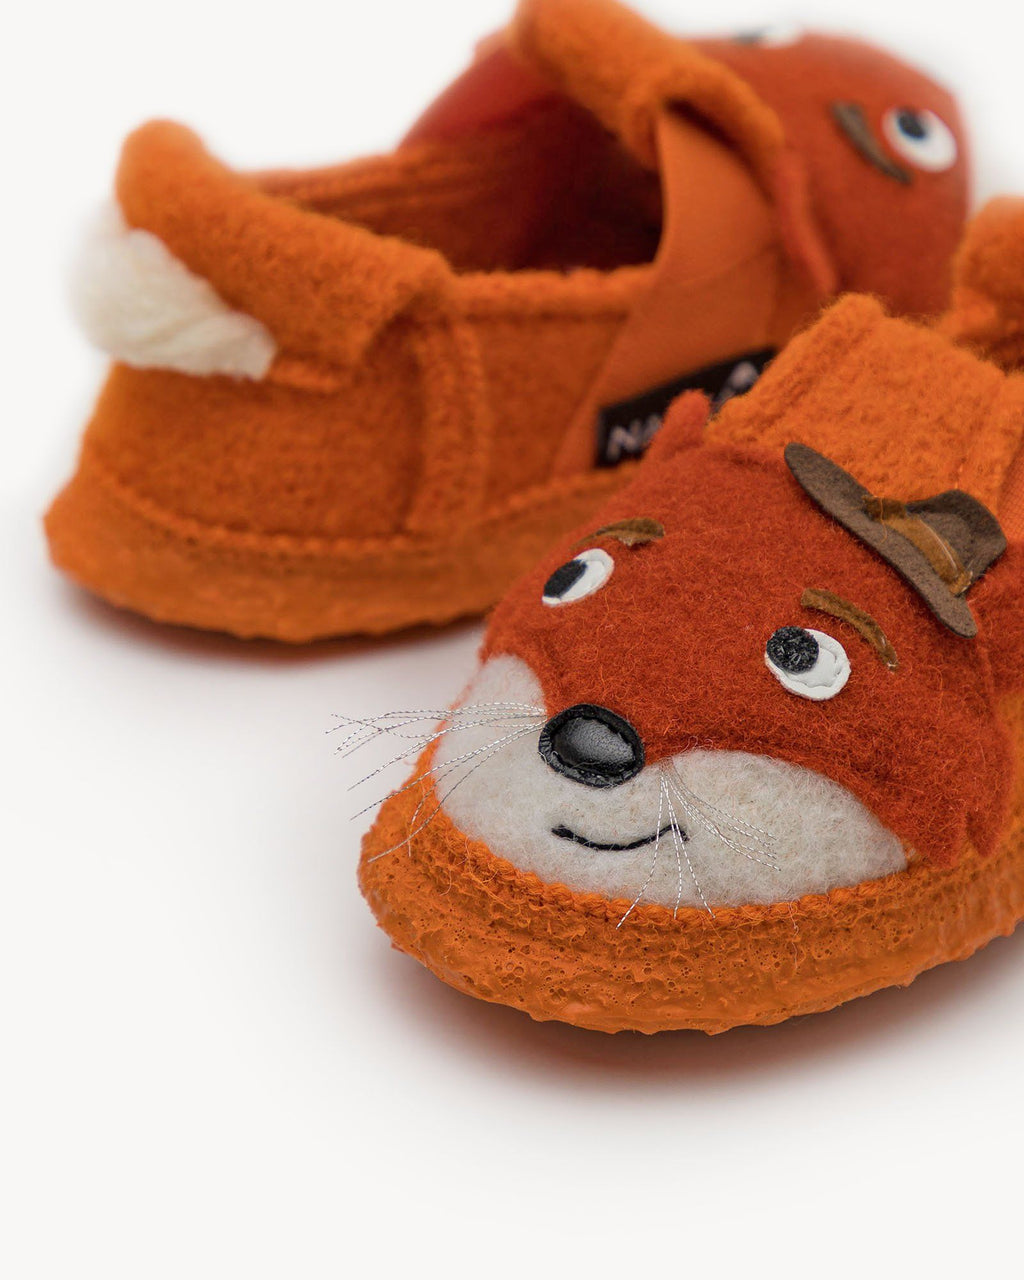 variant_1 | EN Orange Home Slipper Kids Animal | DE Orange Hausschuhe Kinder Tiere